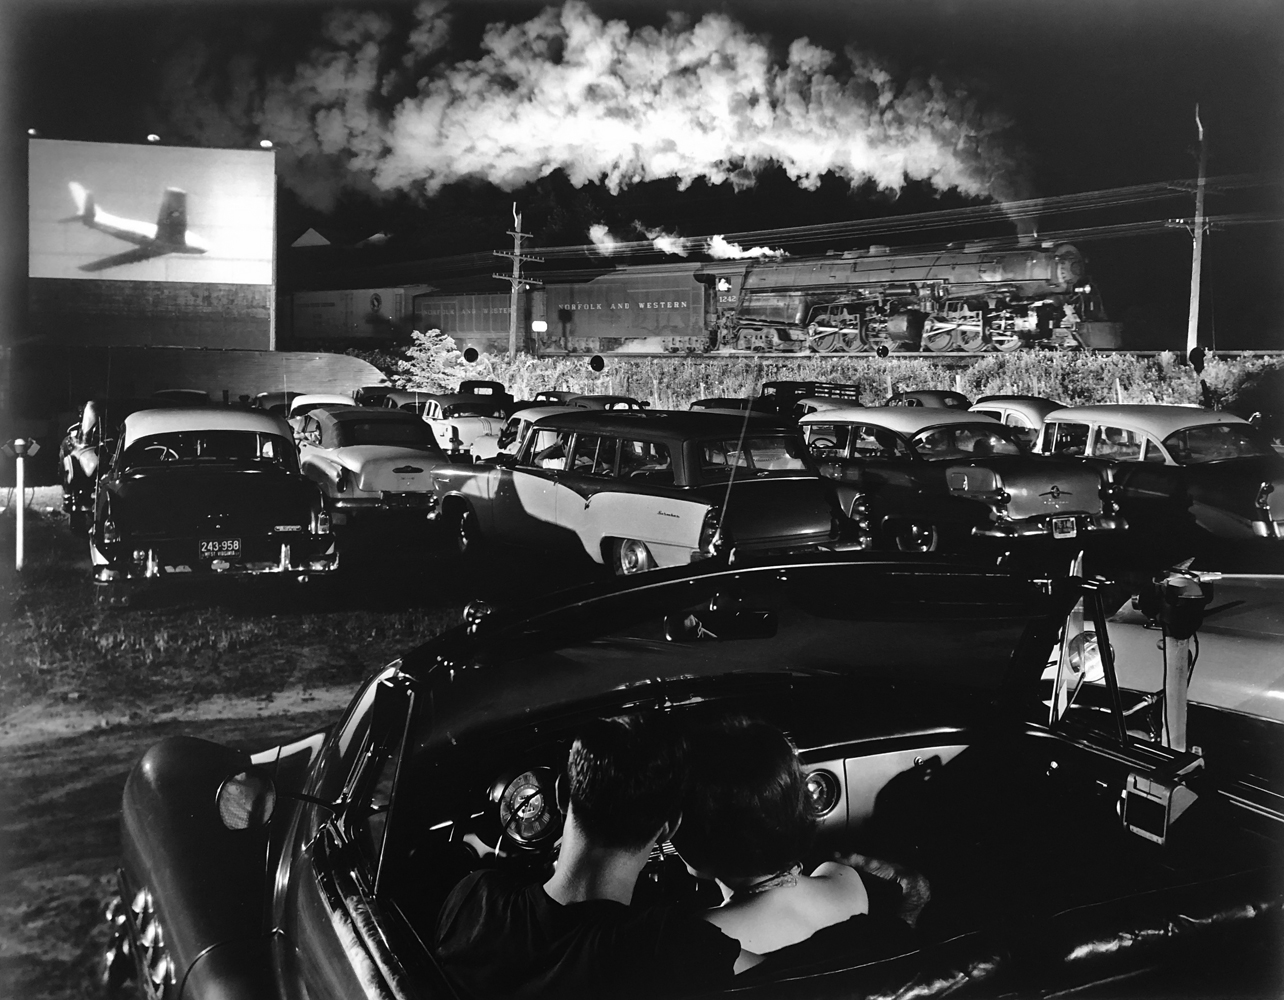 O. Winston Link, Hotshot Eastbound at Iaeger Drive-In, W. VA, 1956, gelatin silver print, 14.25 x 18.25 inches, signed by artist, price on request